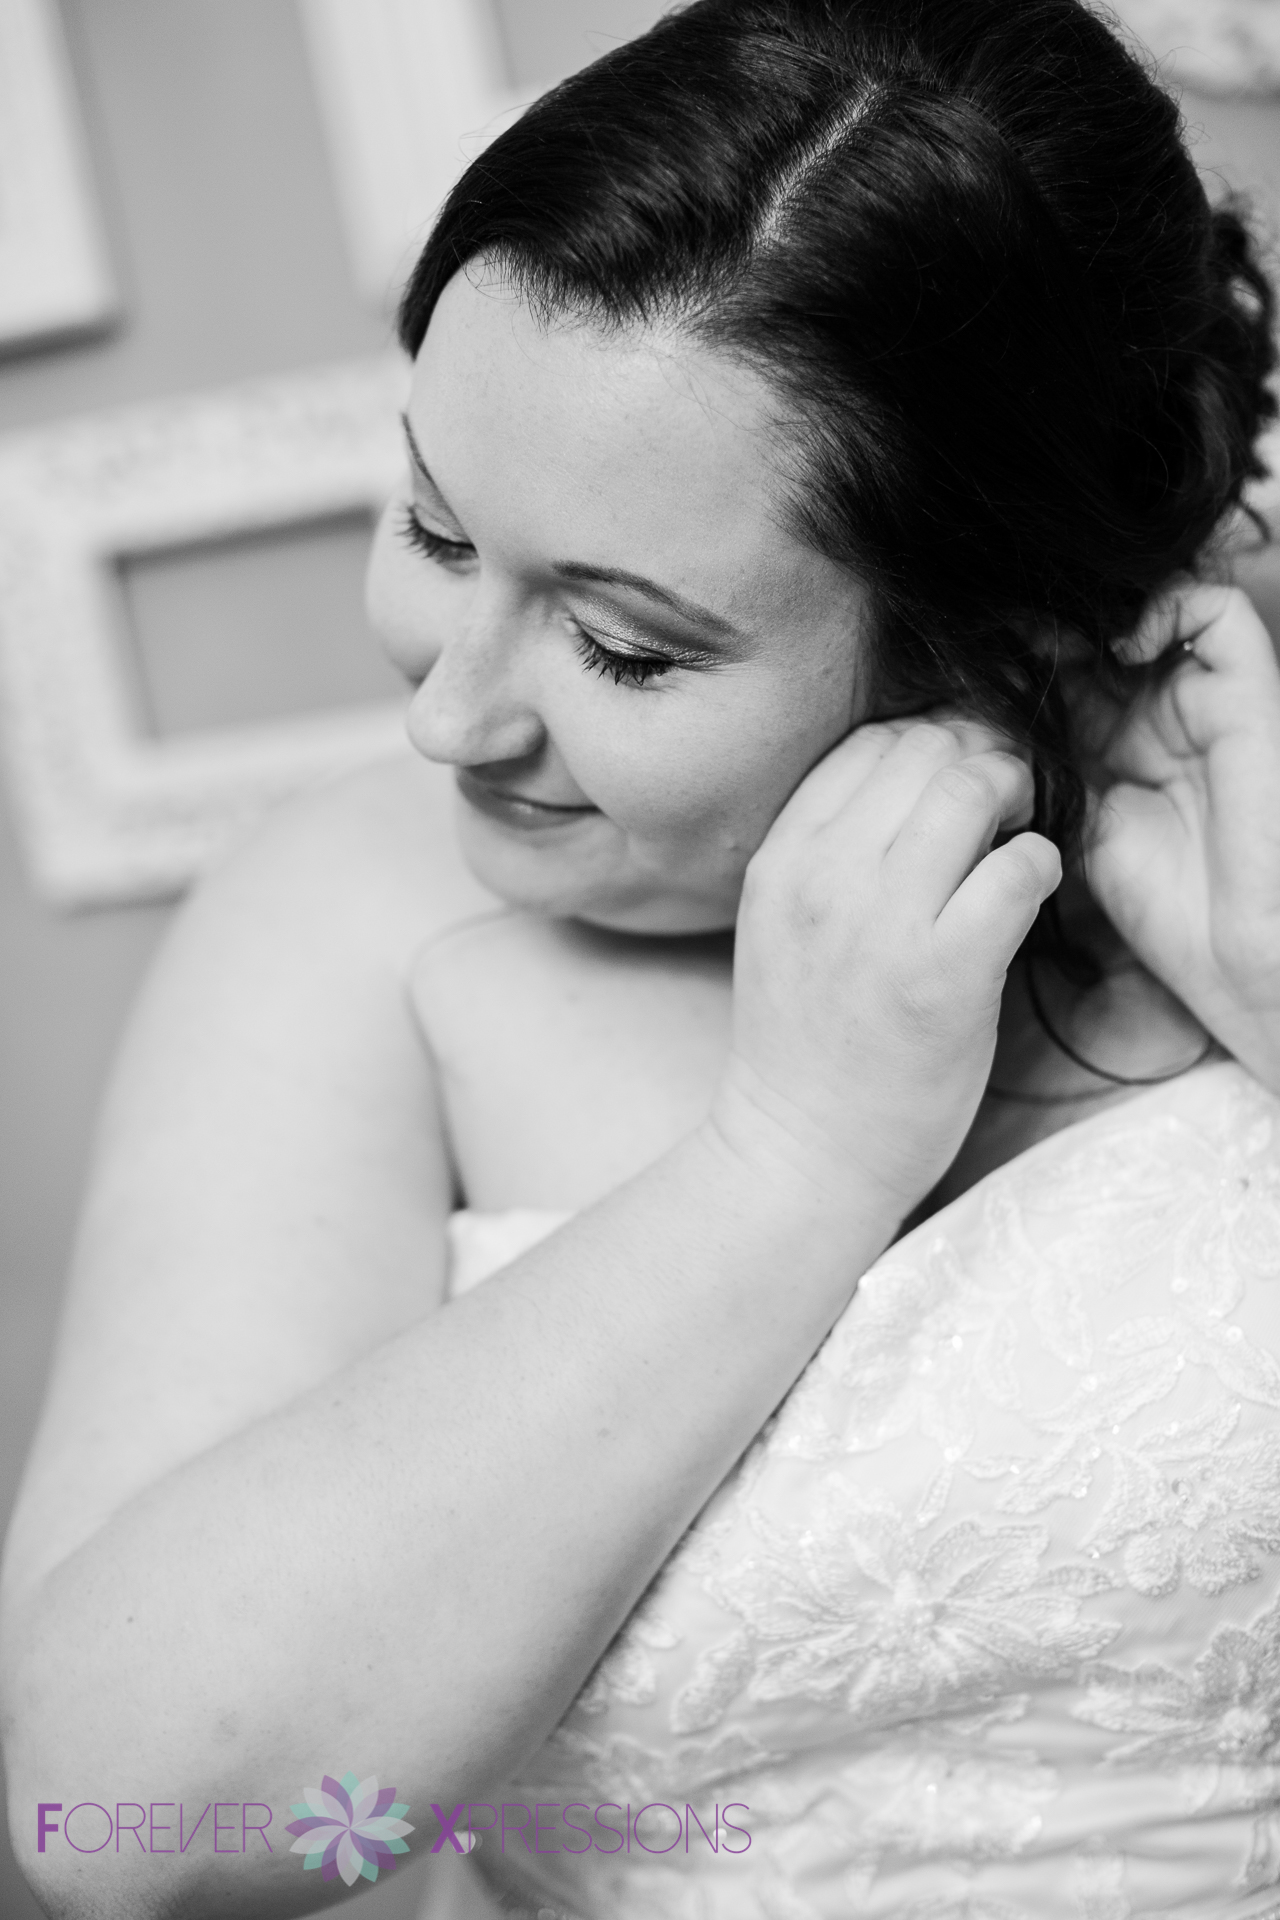 Forever_Xpressions_Wedding_Photography_Monteverde_Bella_Collina-30103